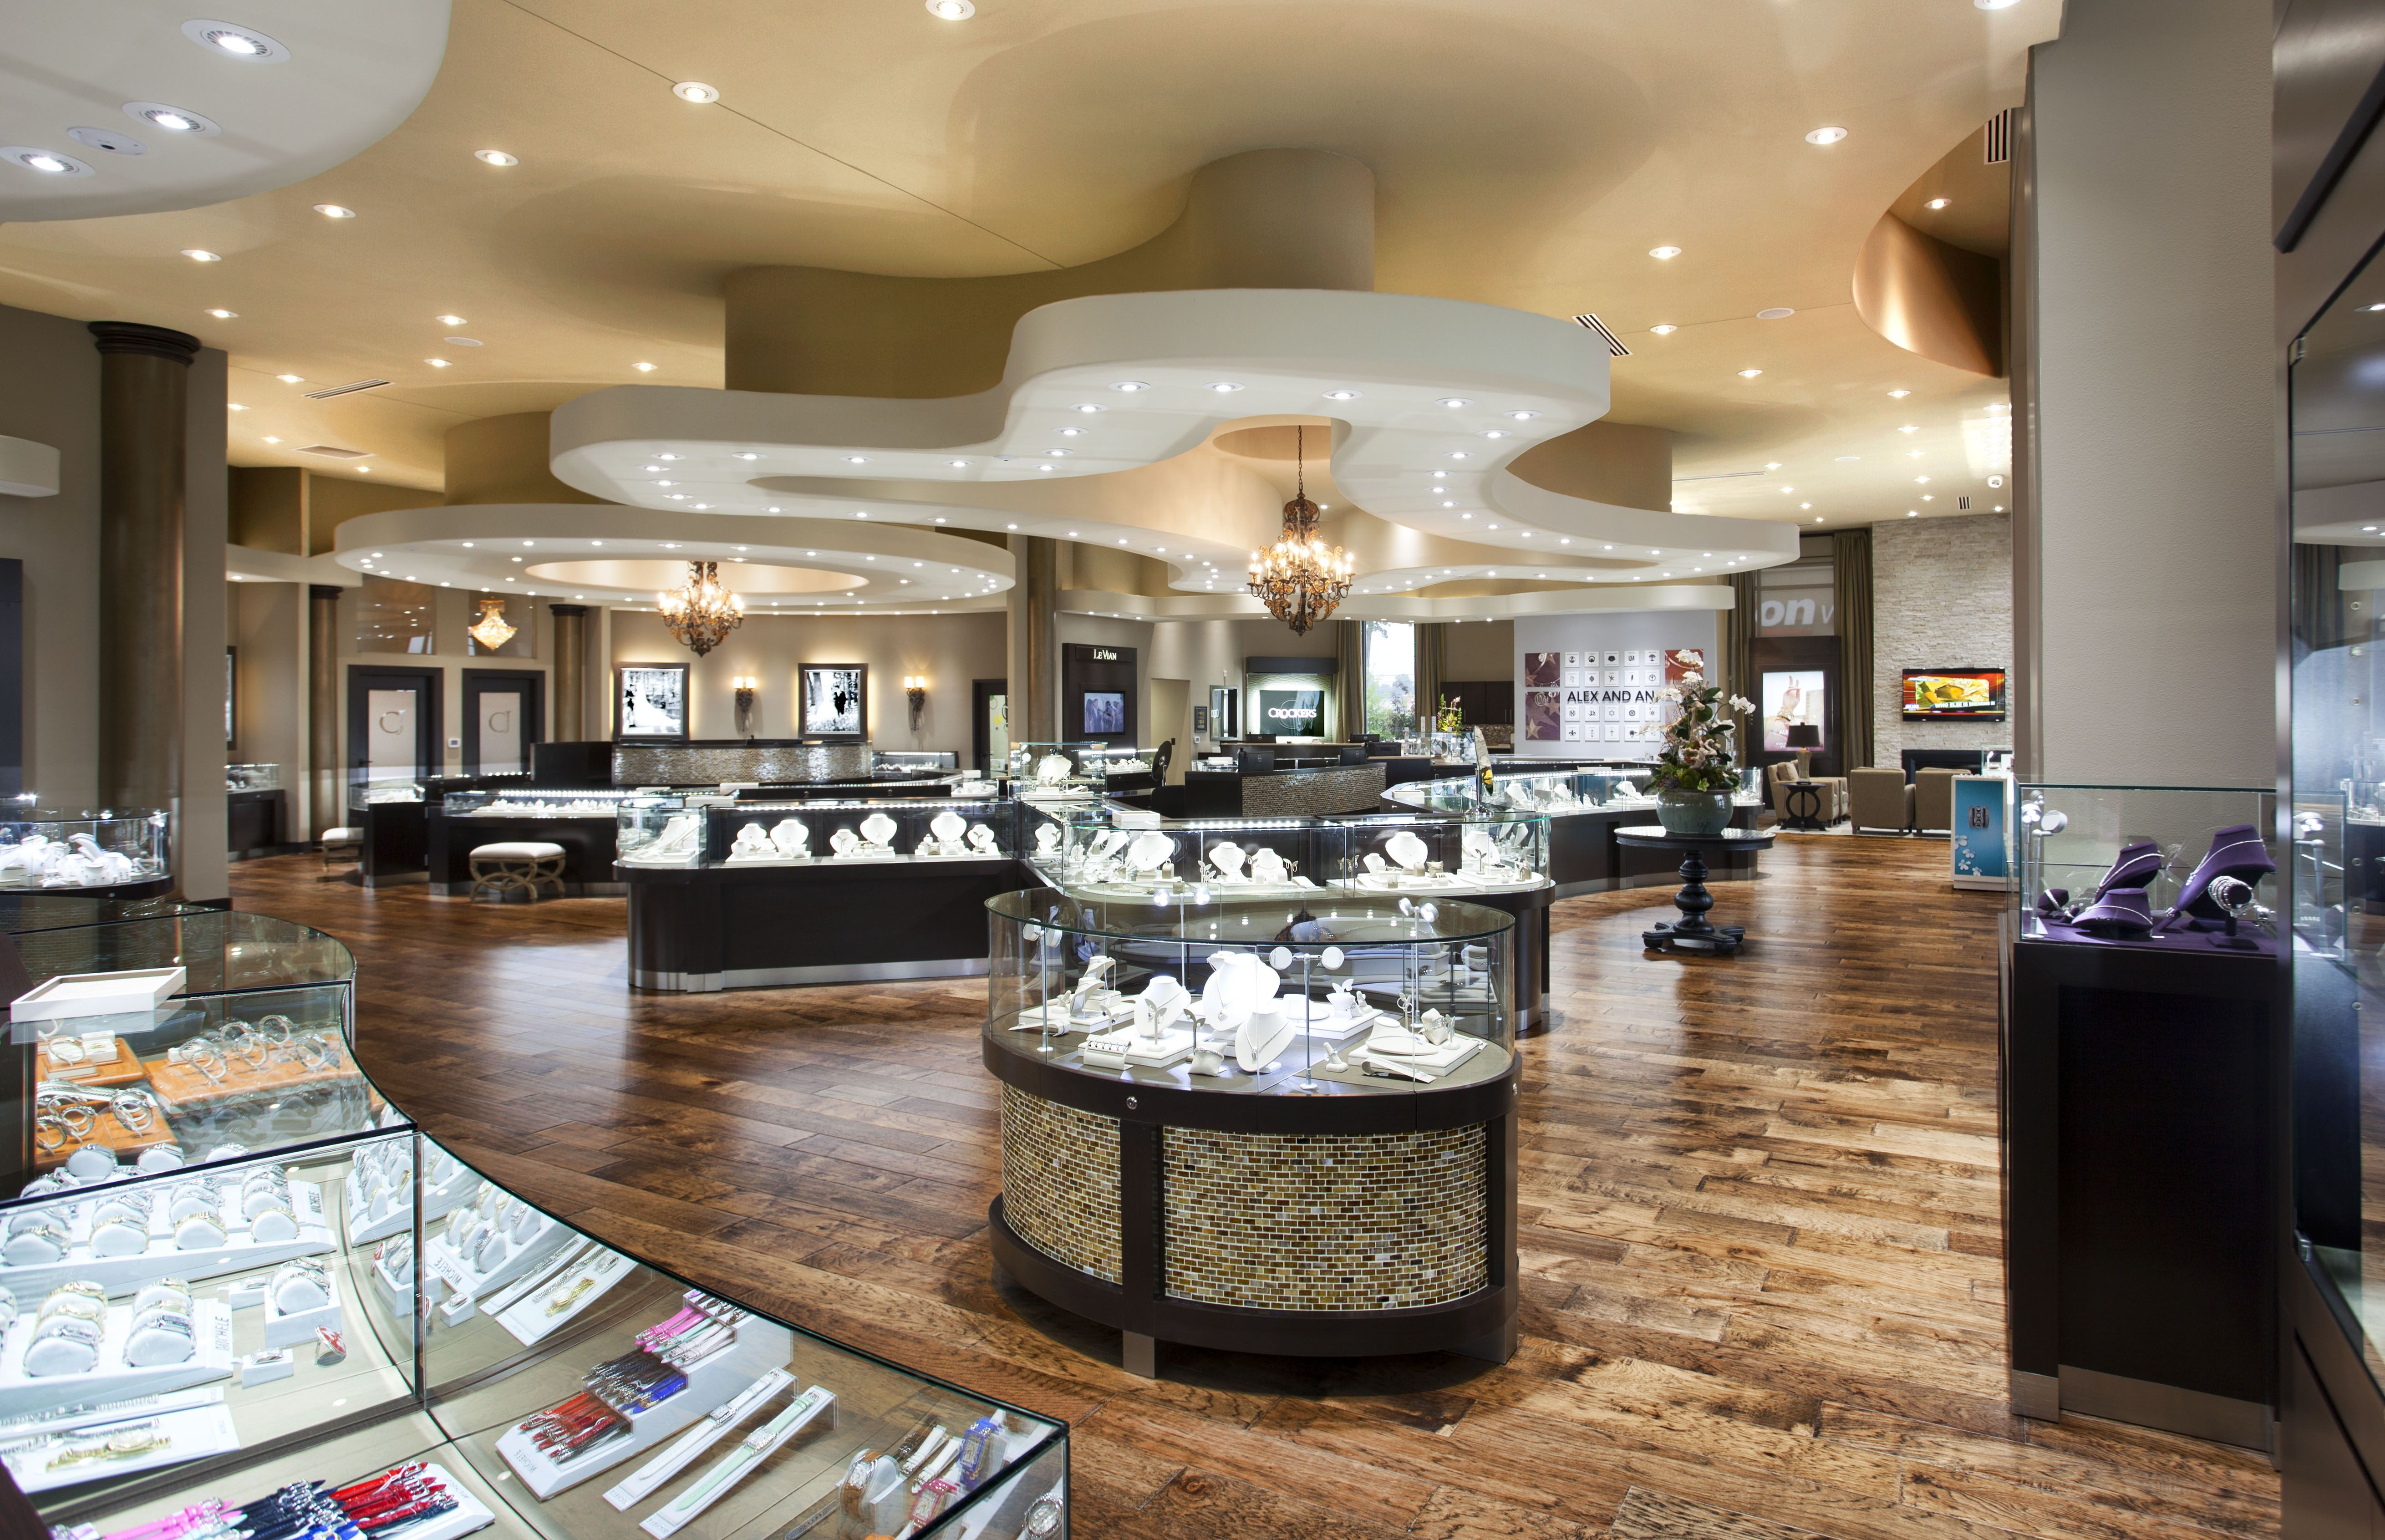 Crocker's Jewelers Manufacture & Design of Store Fixtures by Artco Group.  Proudly Made in America